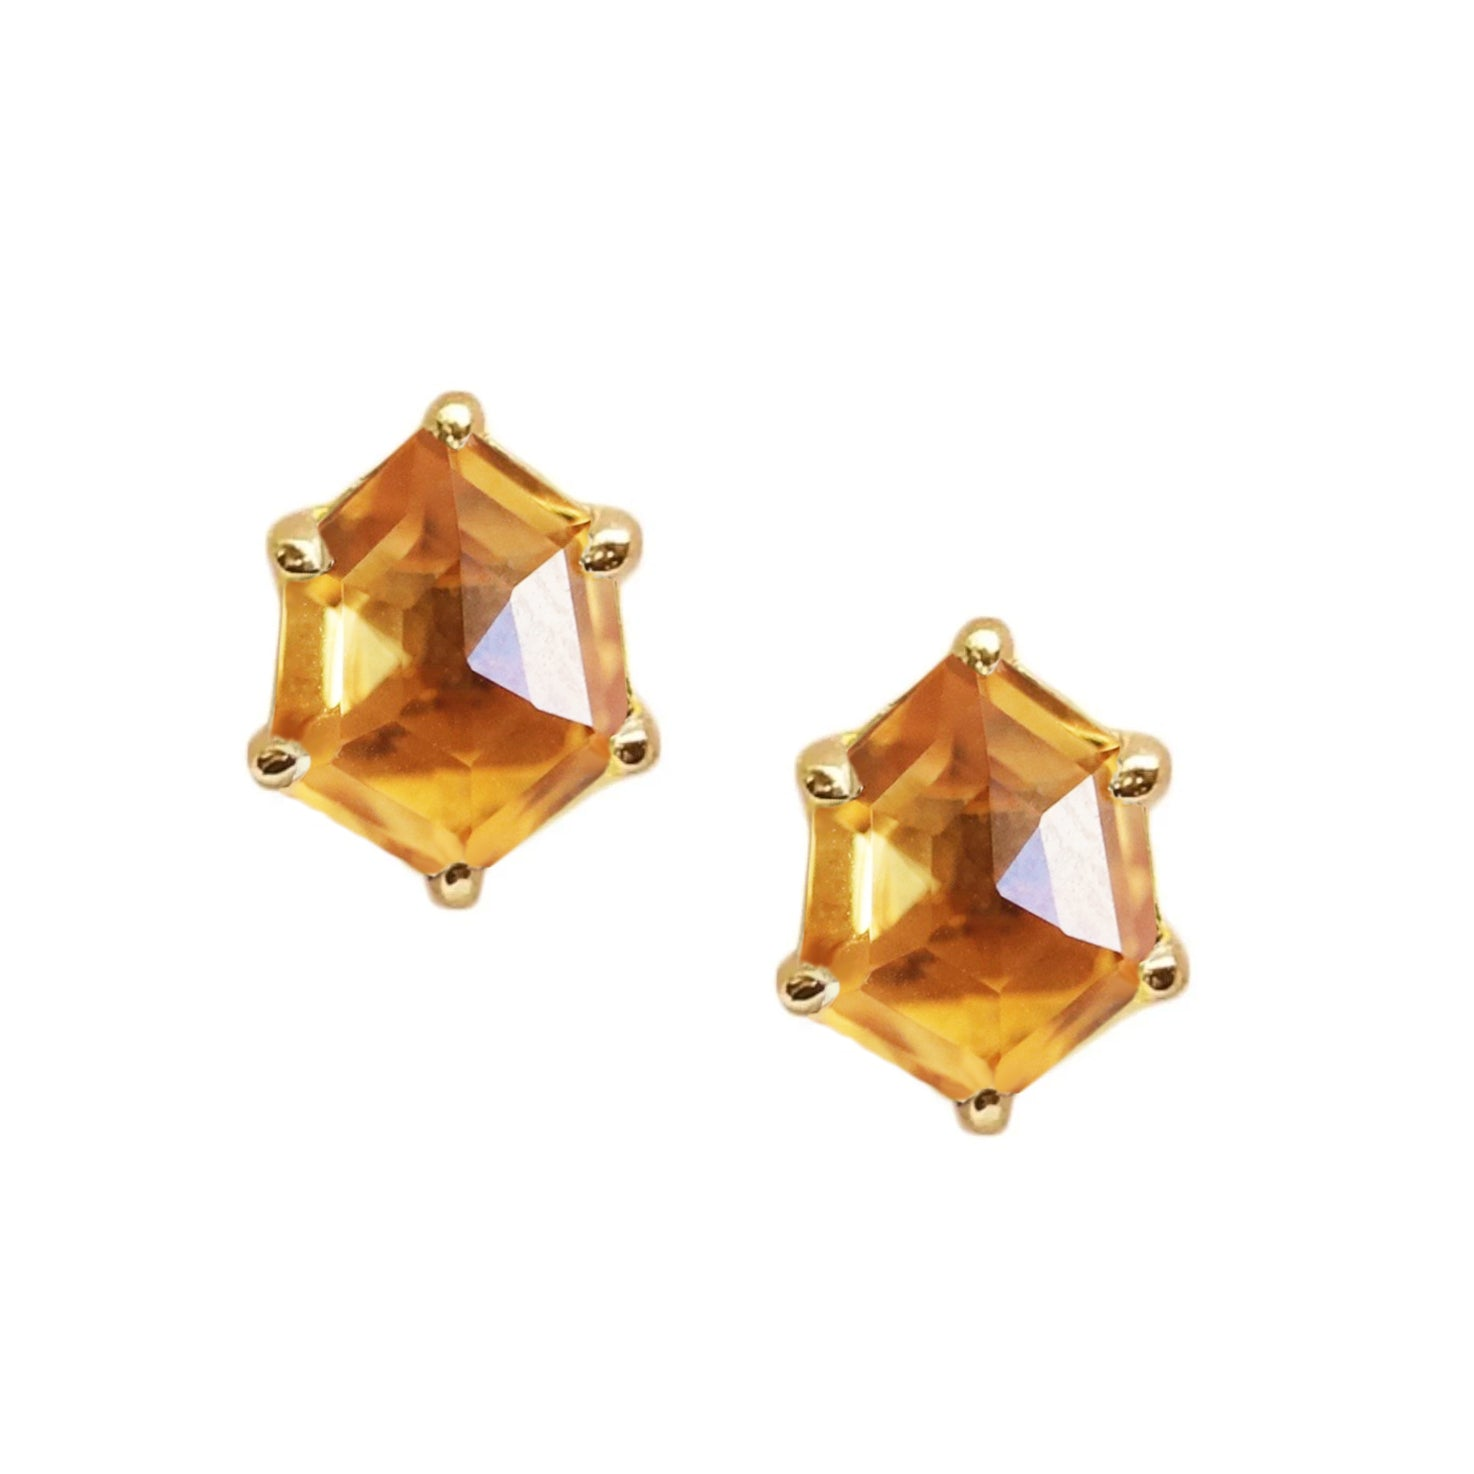 MINI HONOUR SHIELD STUD EARRINGS - CITRINE & GOLD